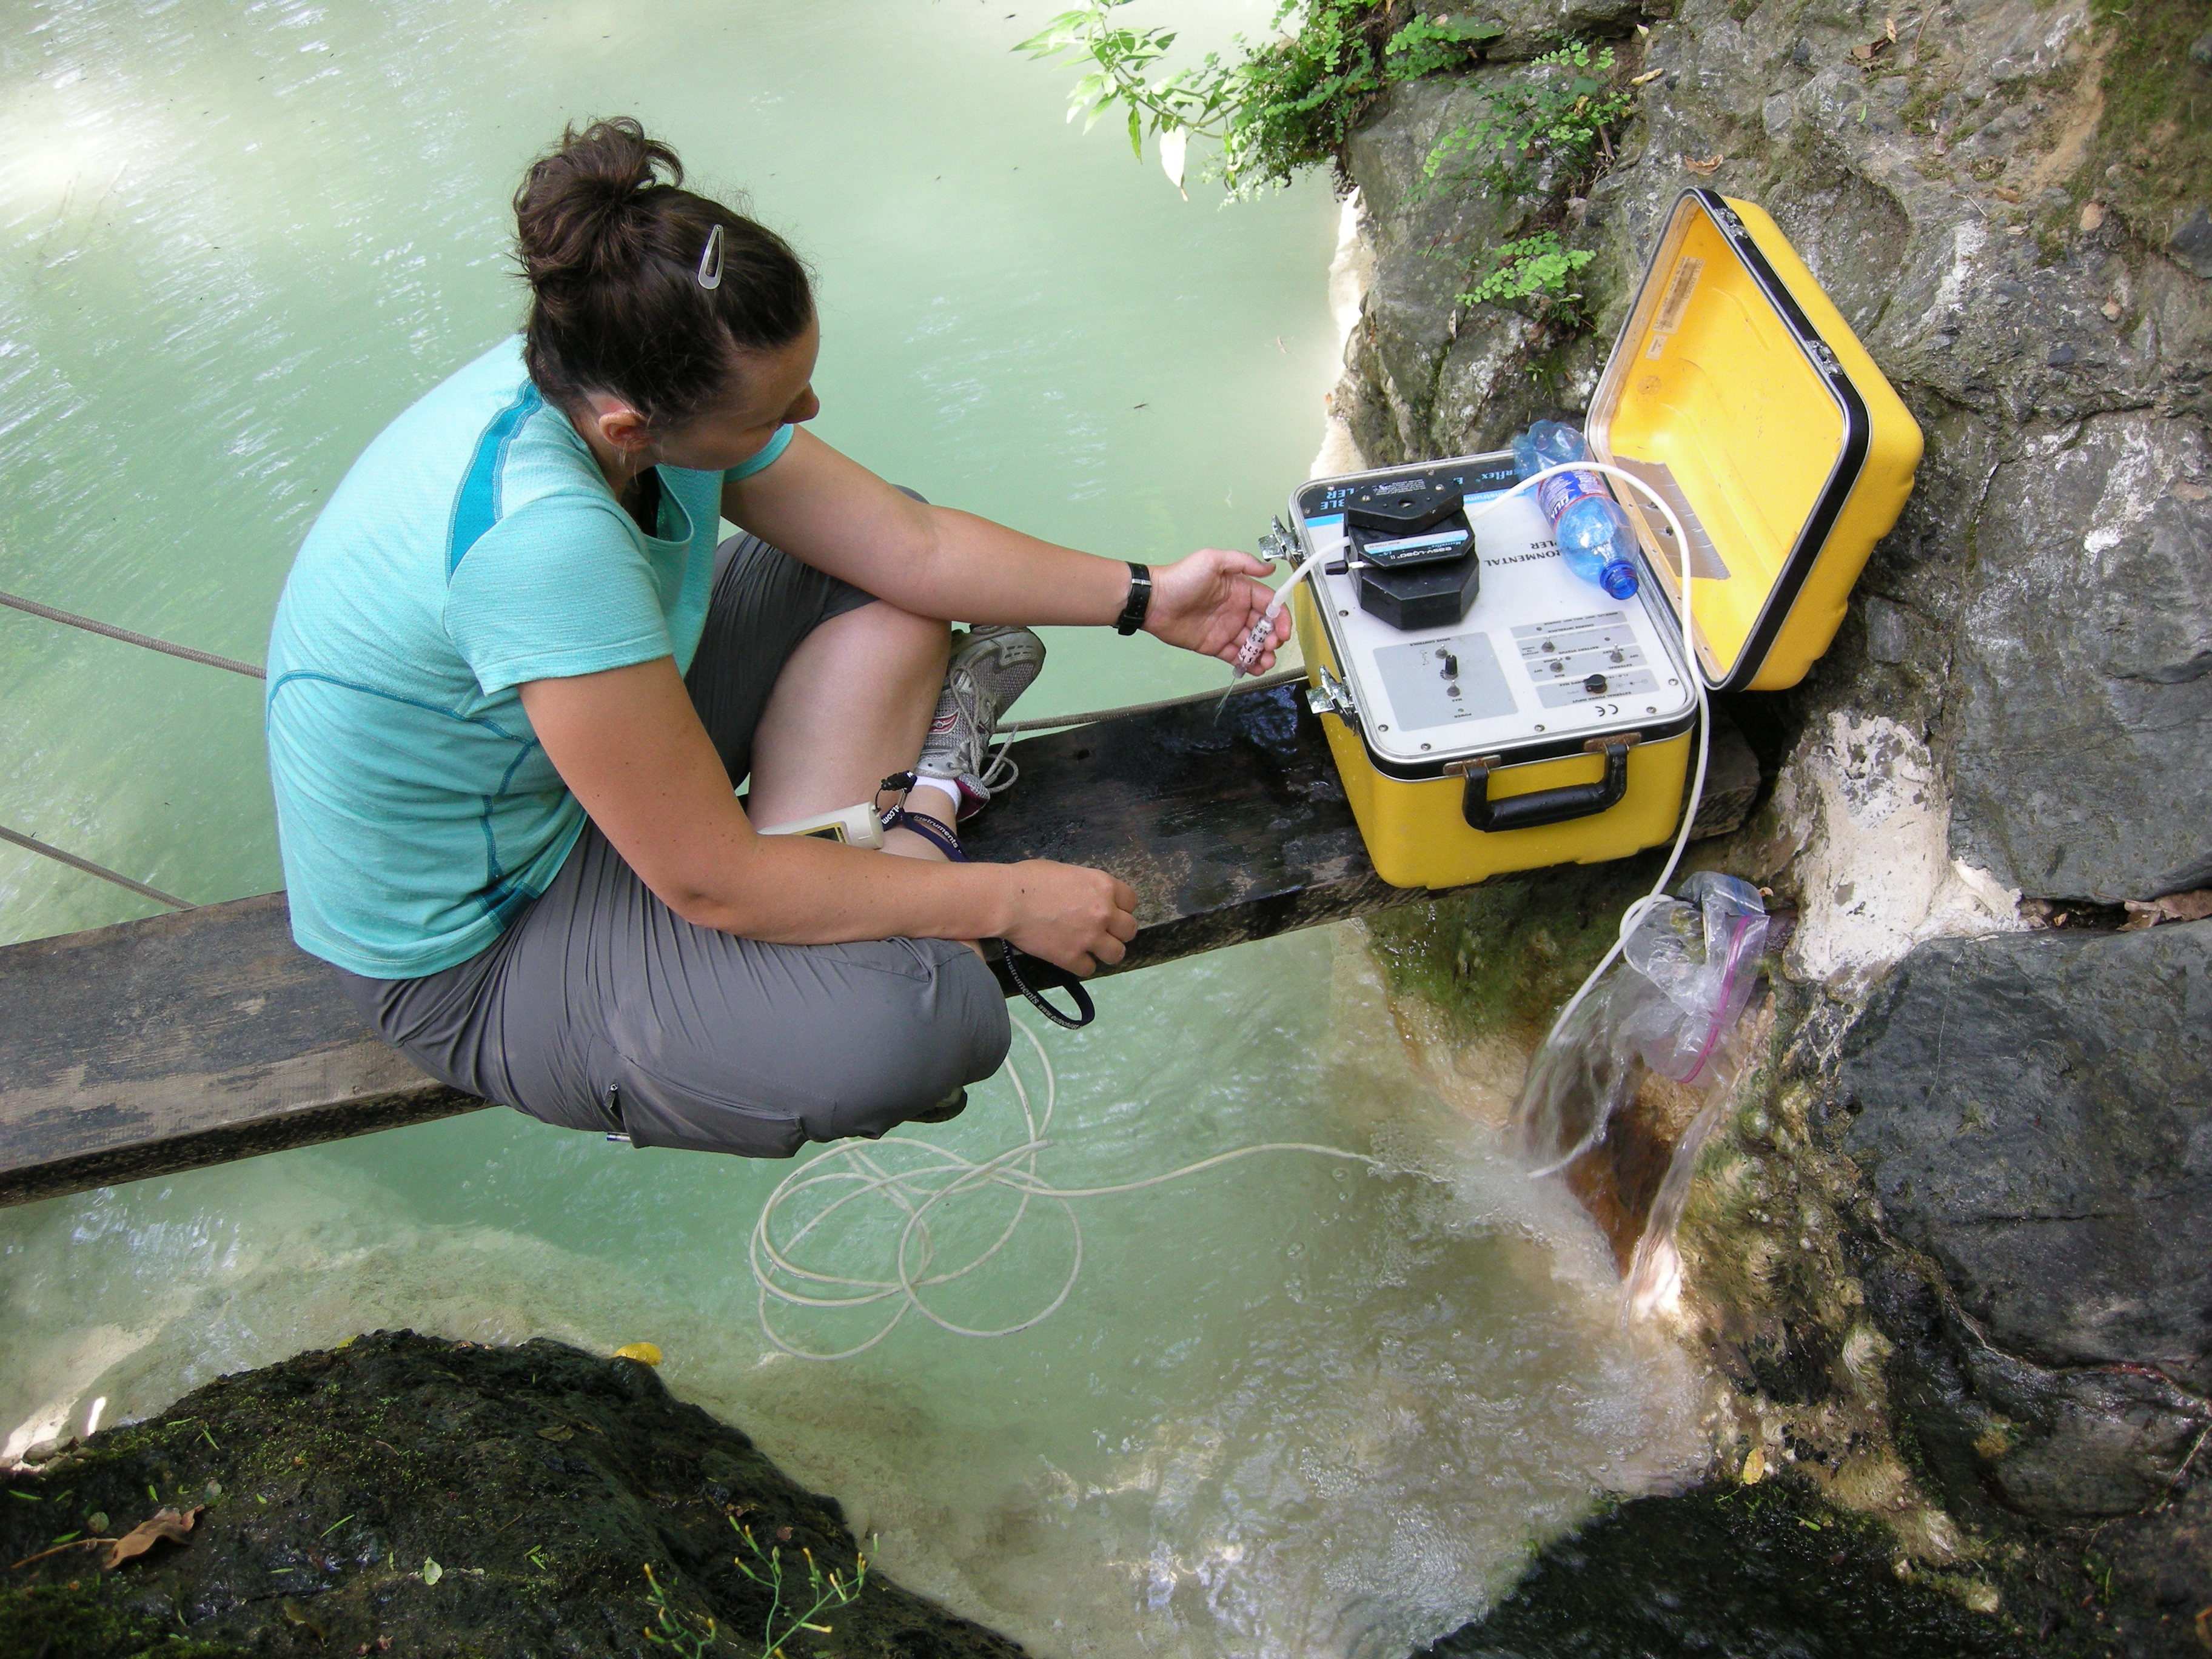 Katrina Twing (East Carolina University) samples pH 12 serpentinite springs at the Liguria Ophiolite, Italy. The pump and tubing visible in the photo are used to collect subsurface fluid samples for chemistry and DNA sequencing. Photo: Billy Brazelton (ECU).